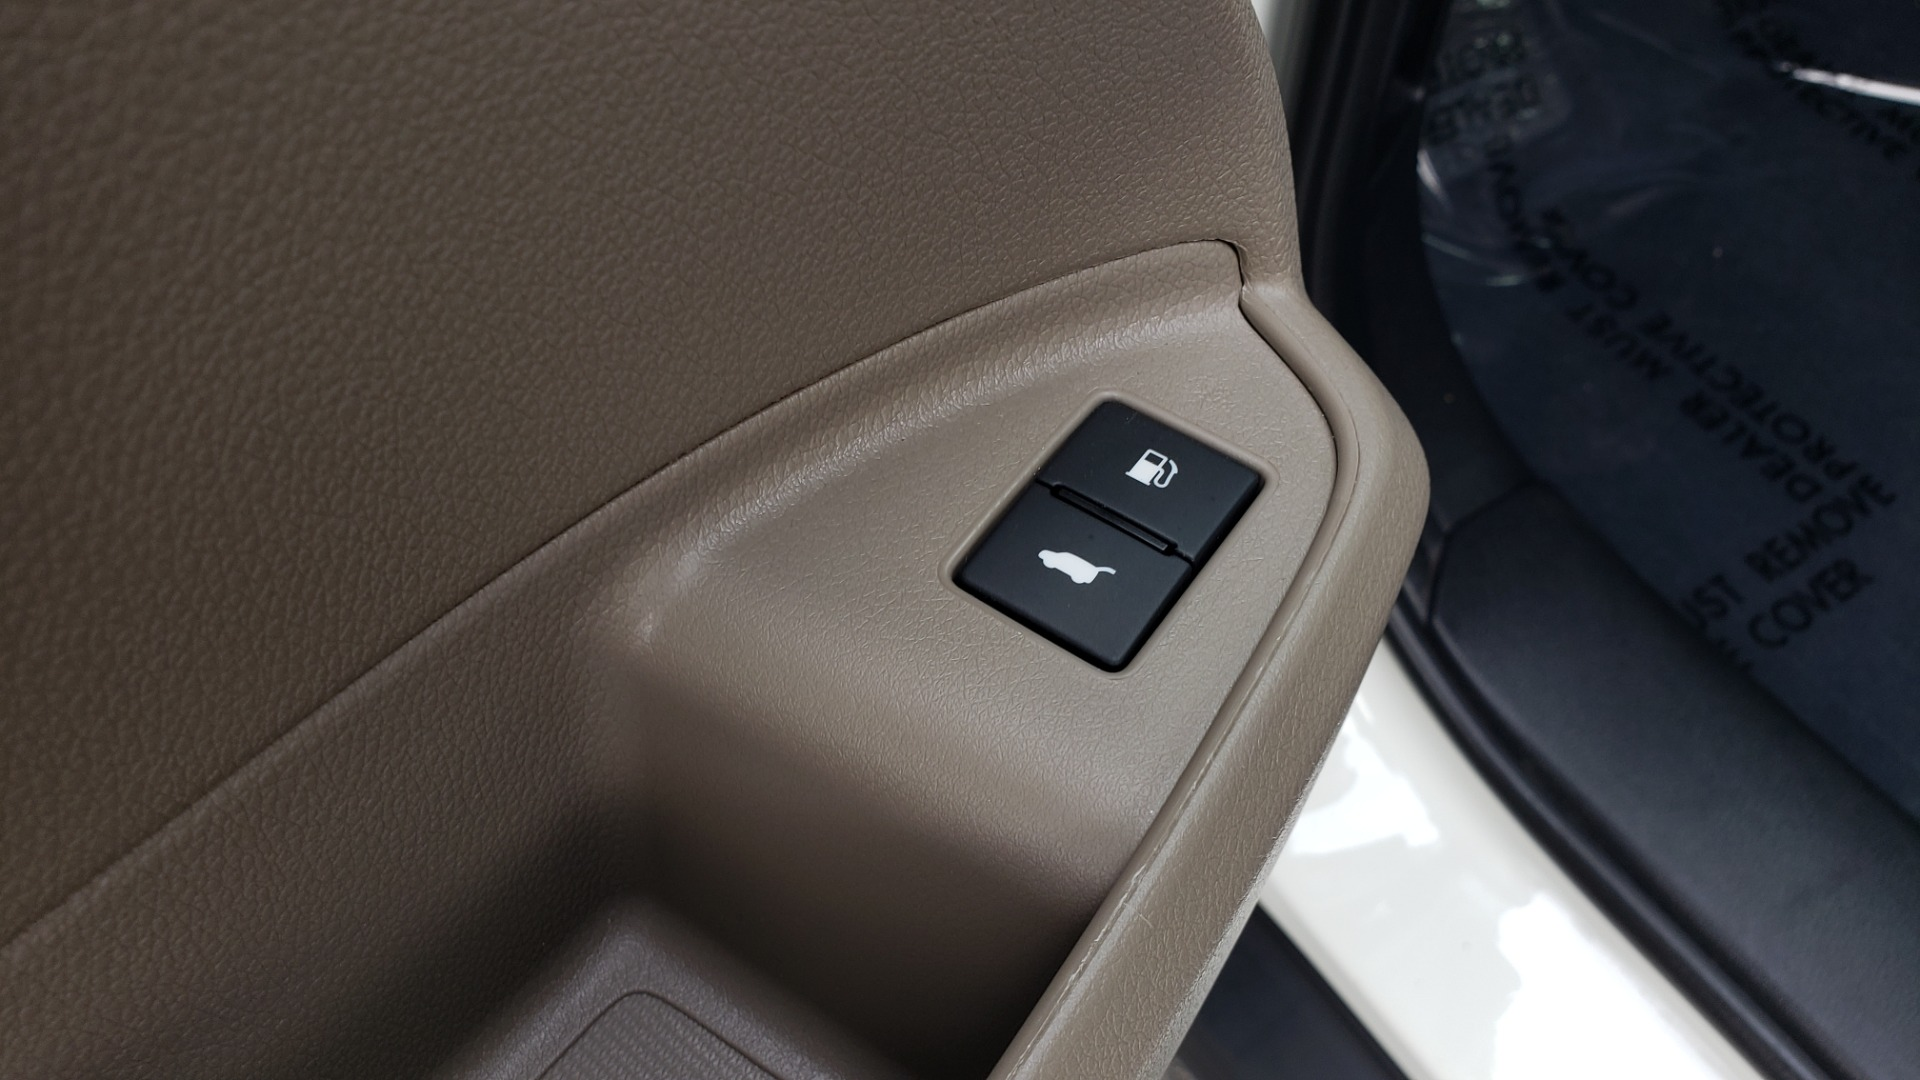 Used 2019 Honda PILOT EX-L / V6 / NAV / SUNROOF / DVD / 3-ROW / REARVIEW for sale Sold at Formula Imports in Charlotte NC 28227 35